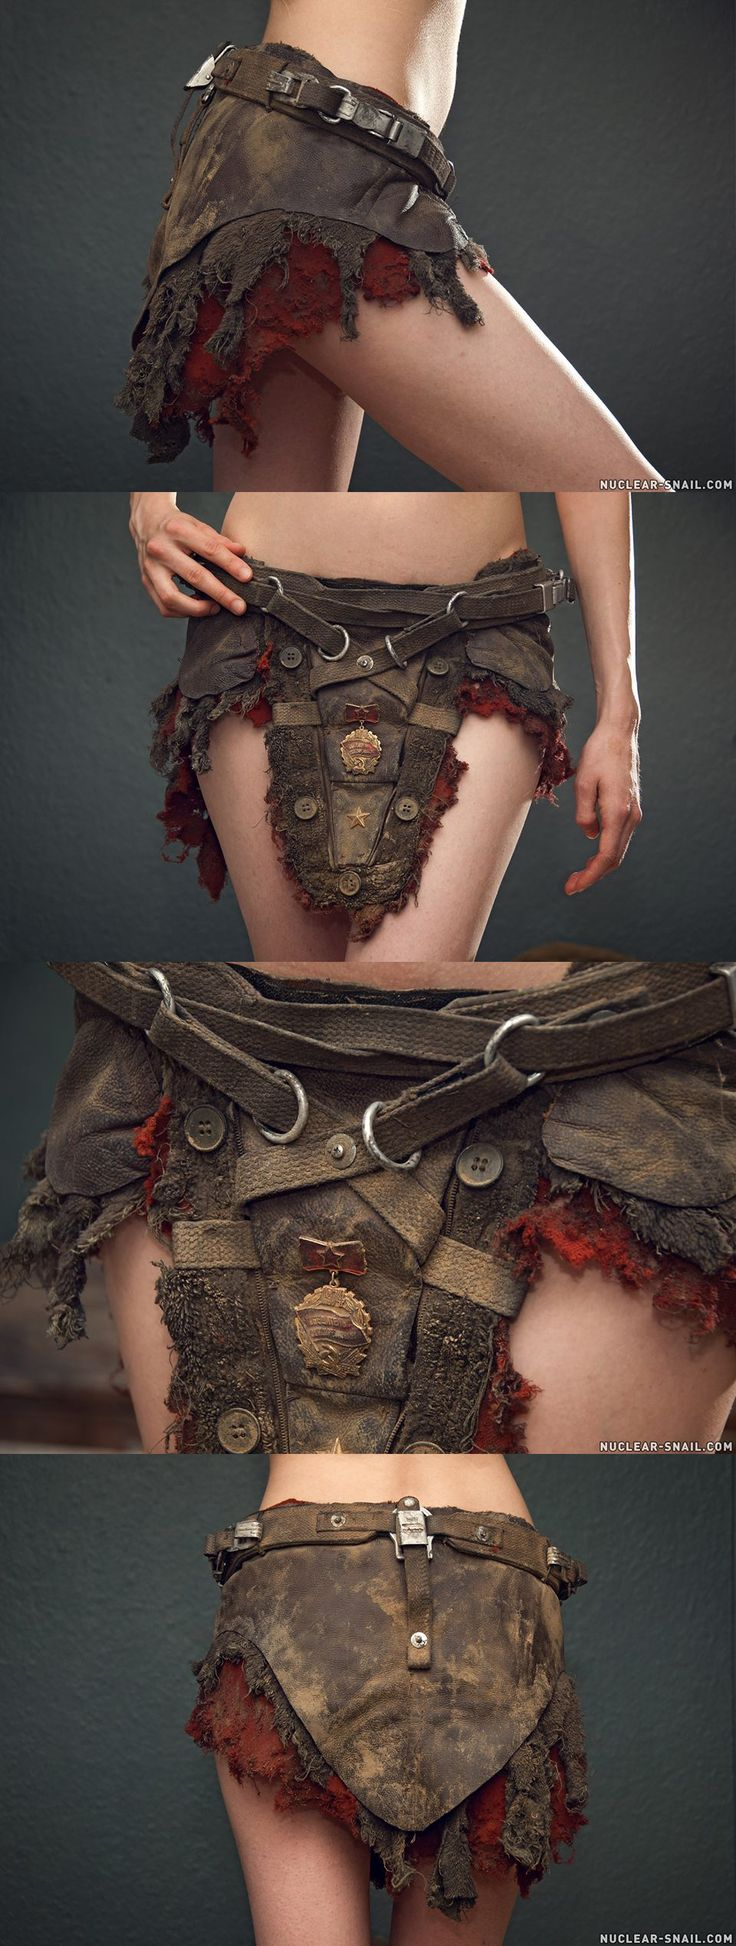 Wasteland russian skirt - nuclear snails https://www.facebook.com/nuclear.snail